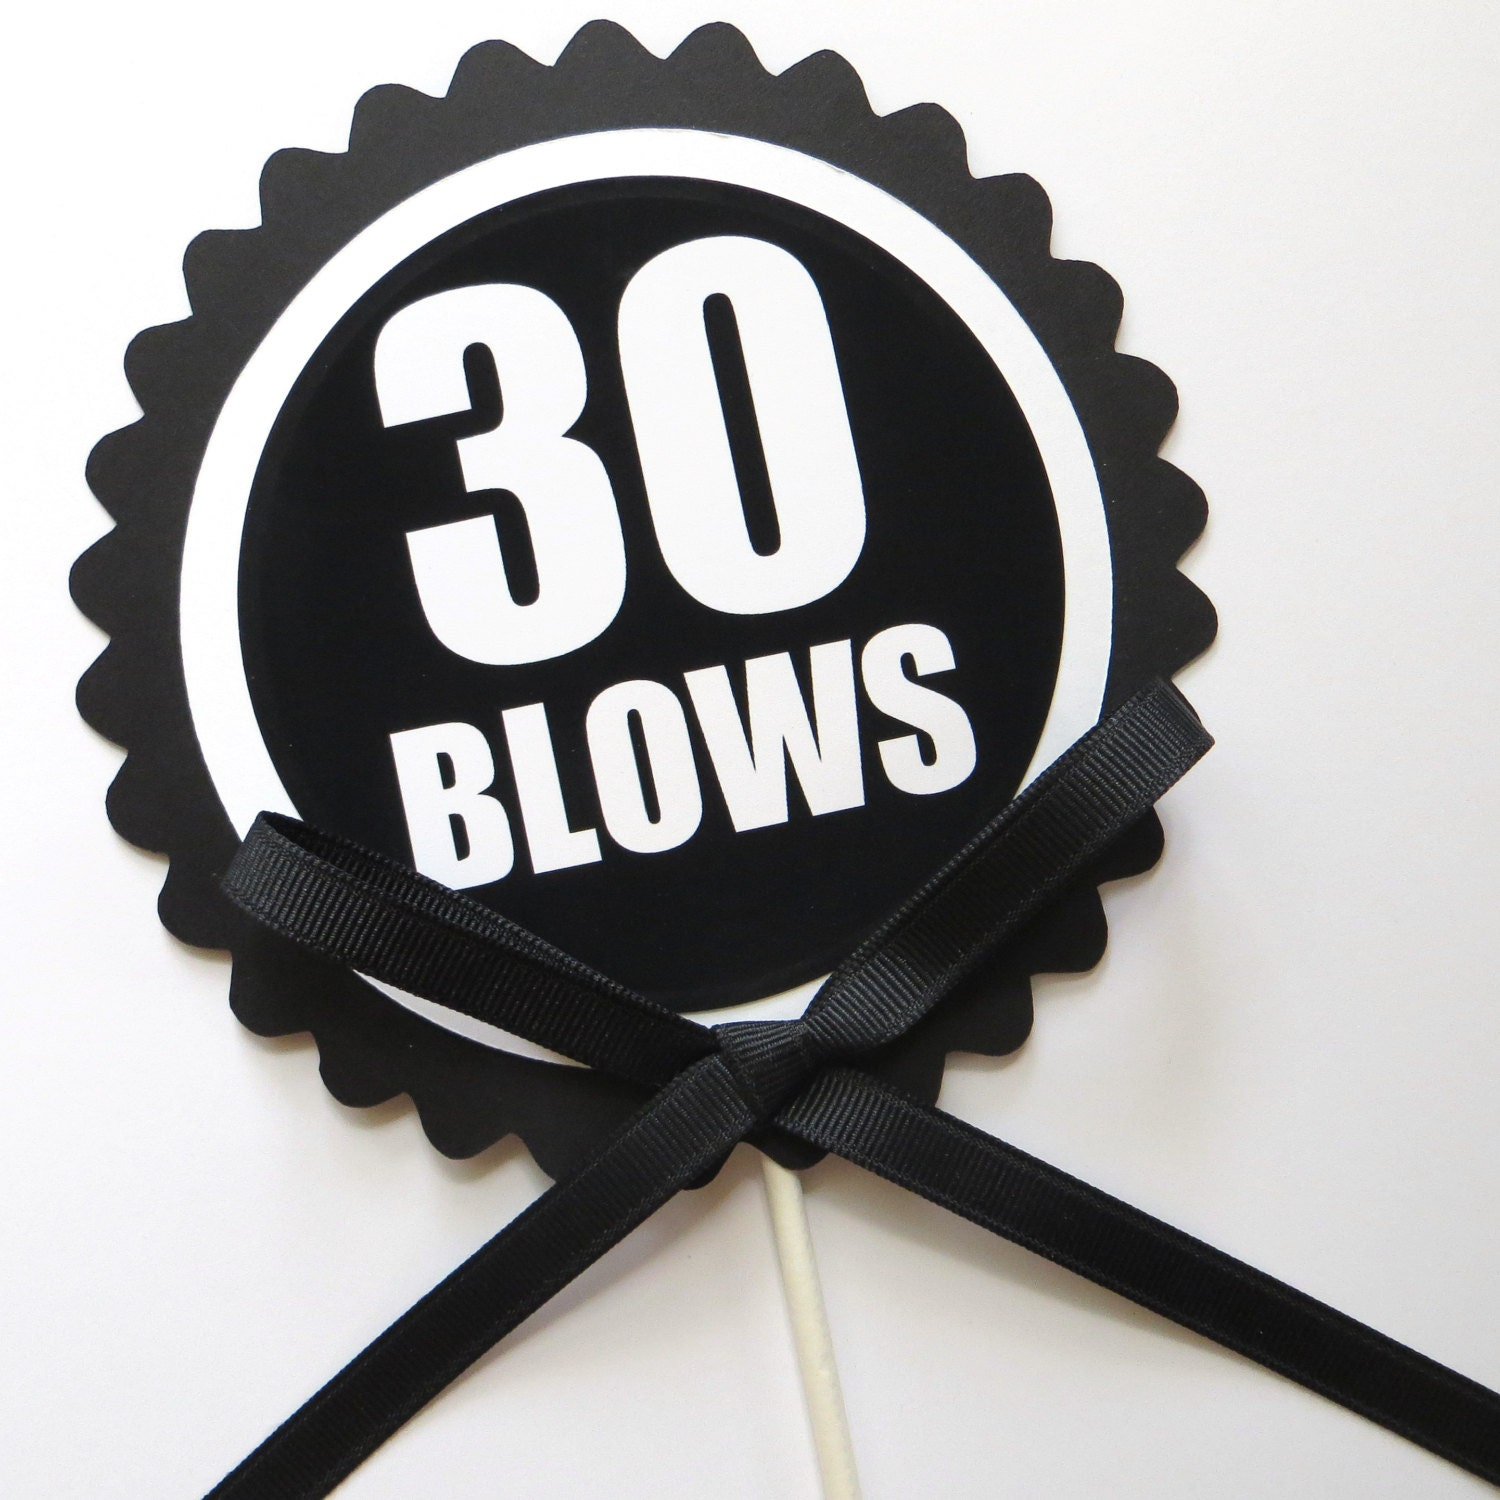 30th birthday cake topper 30 blows cake decoration for 30 cake decoration